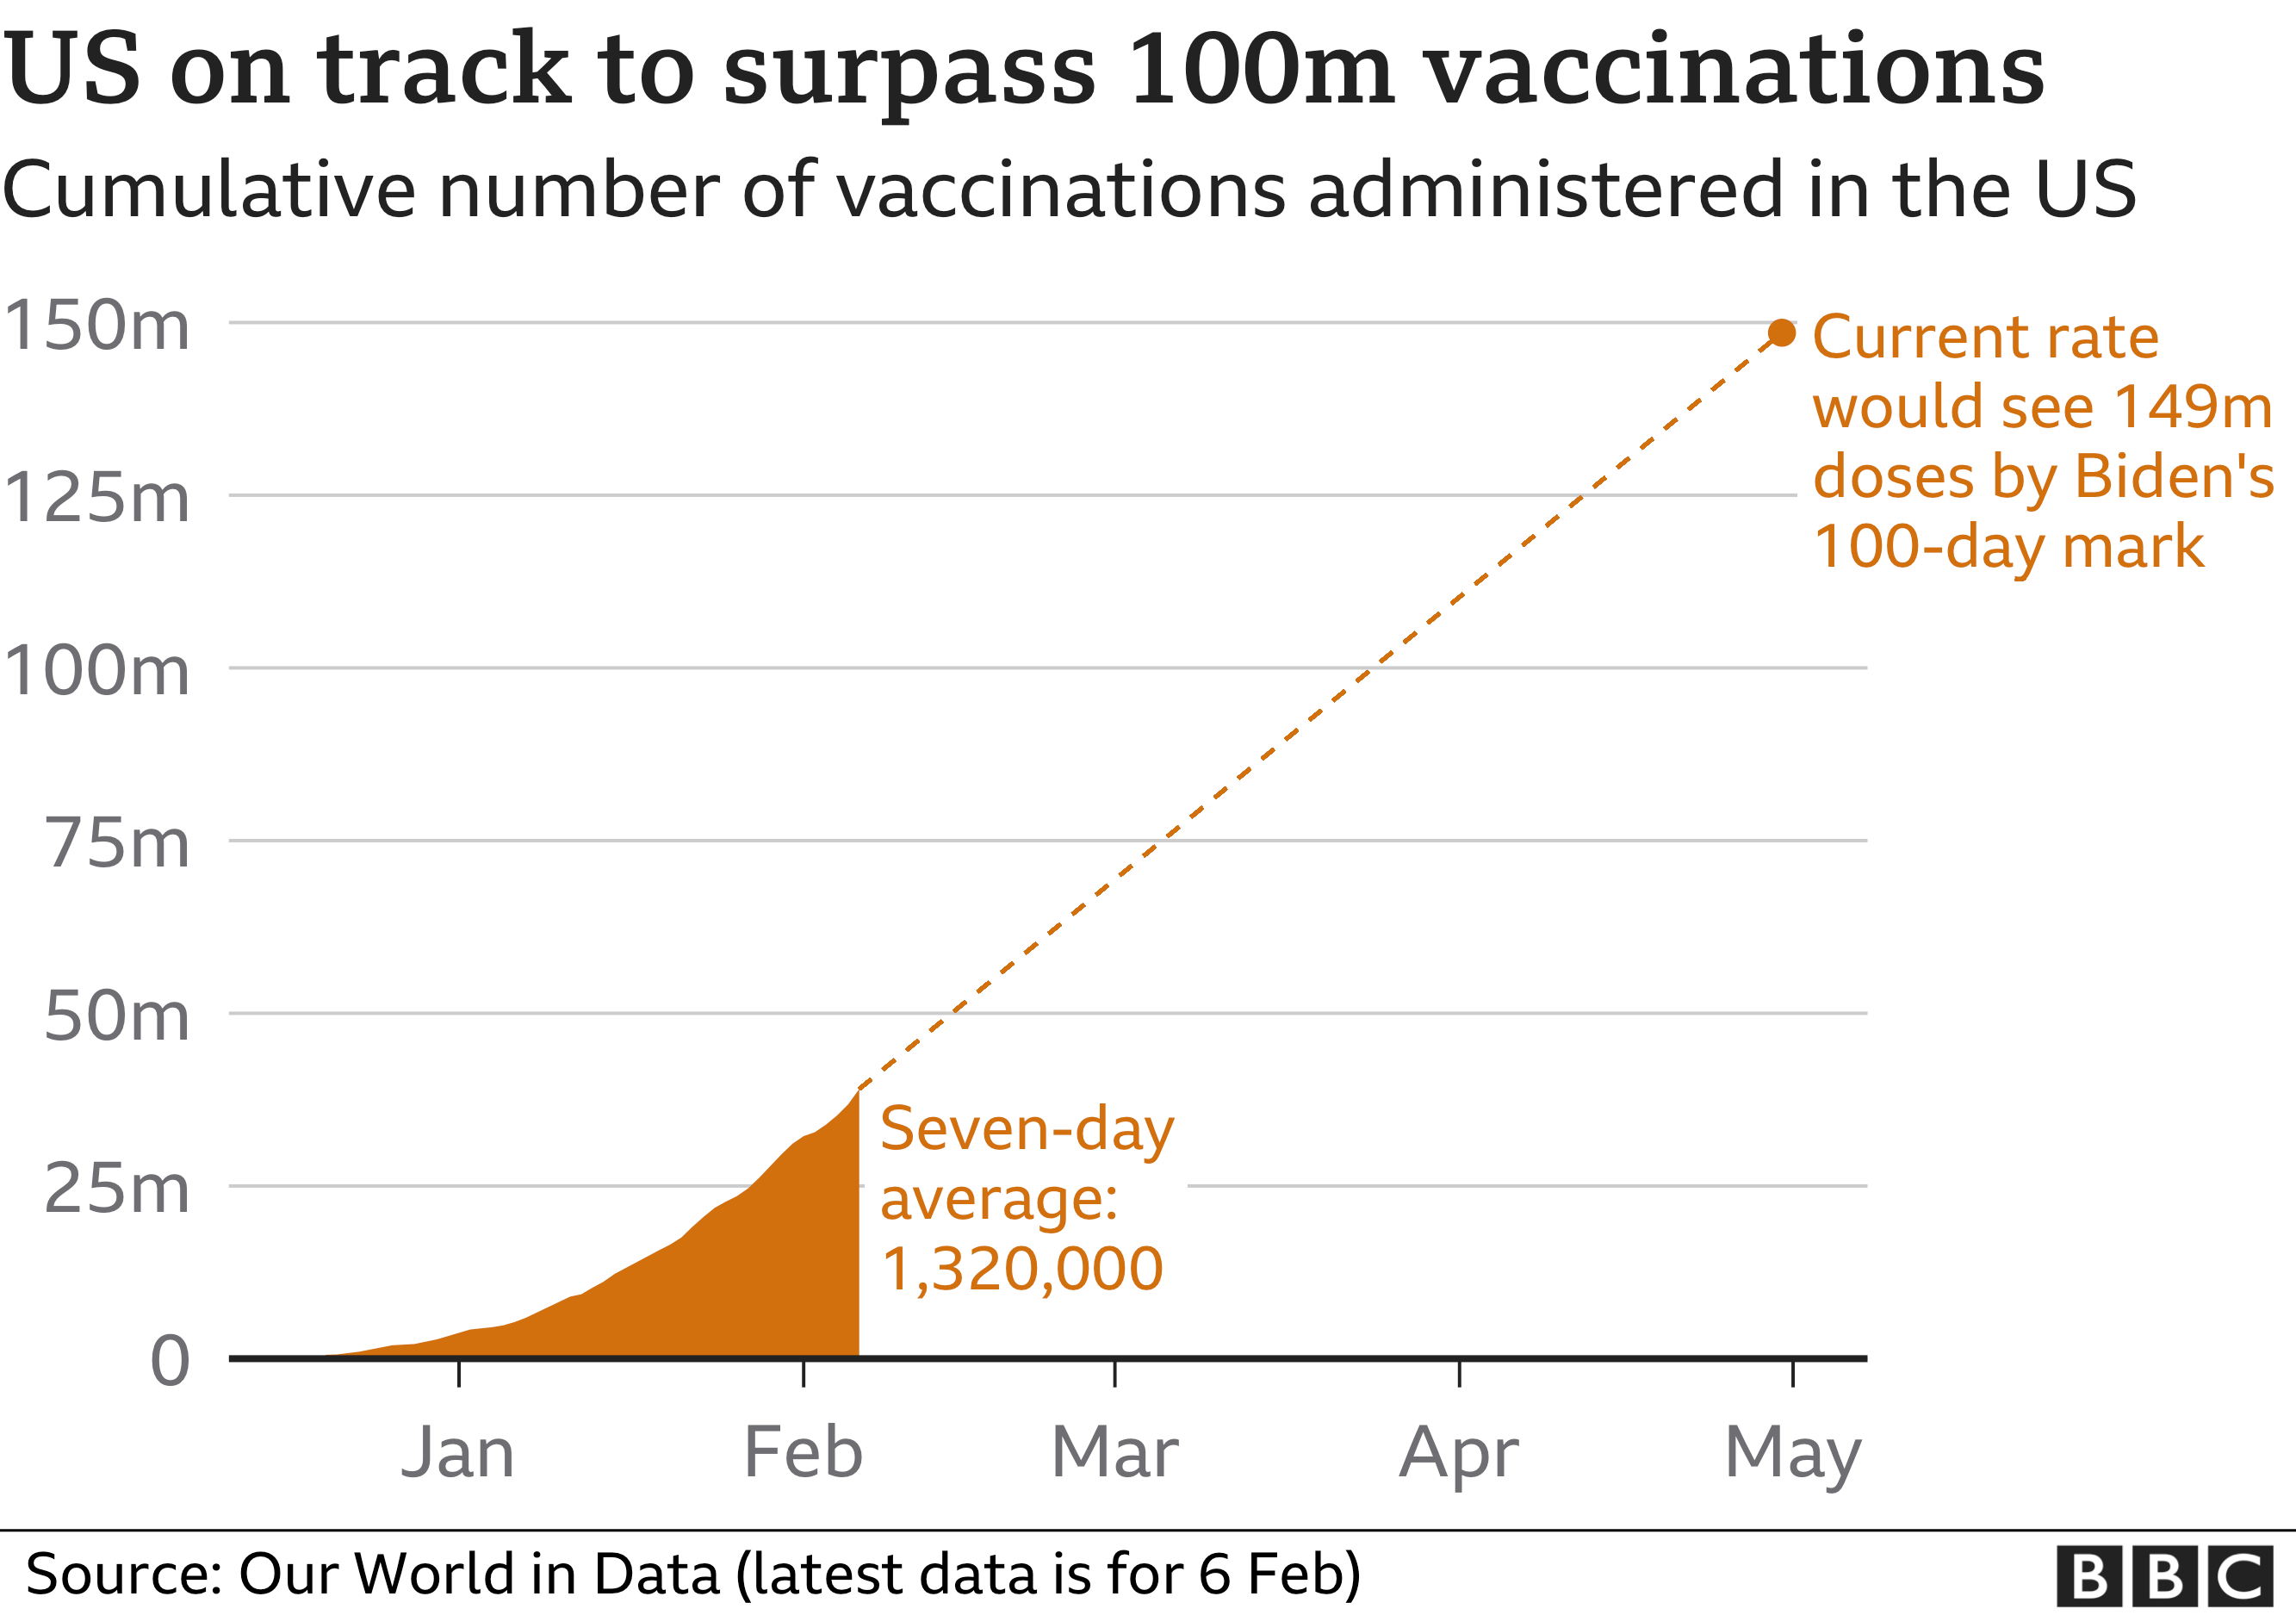 Chart showing the cumulative number of vaccinations administered in the US so far